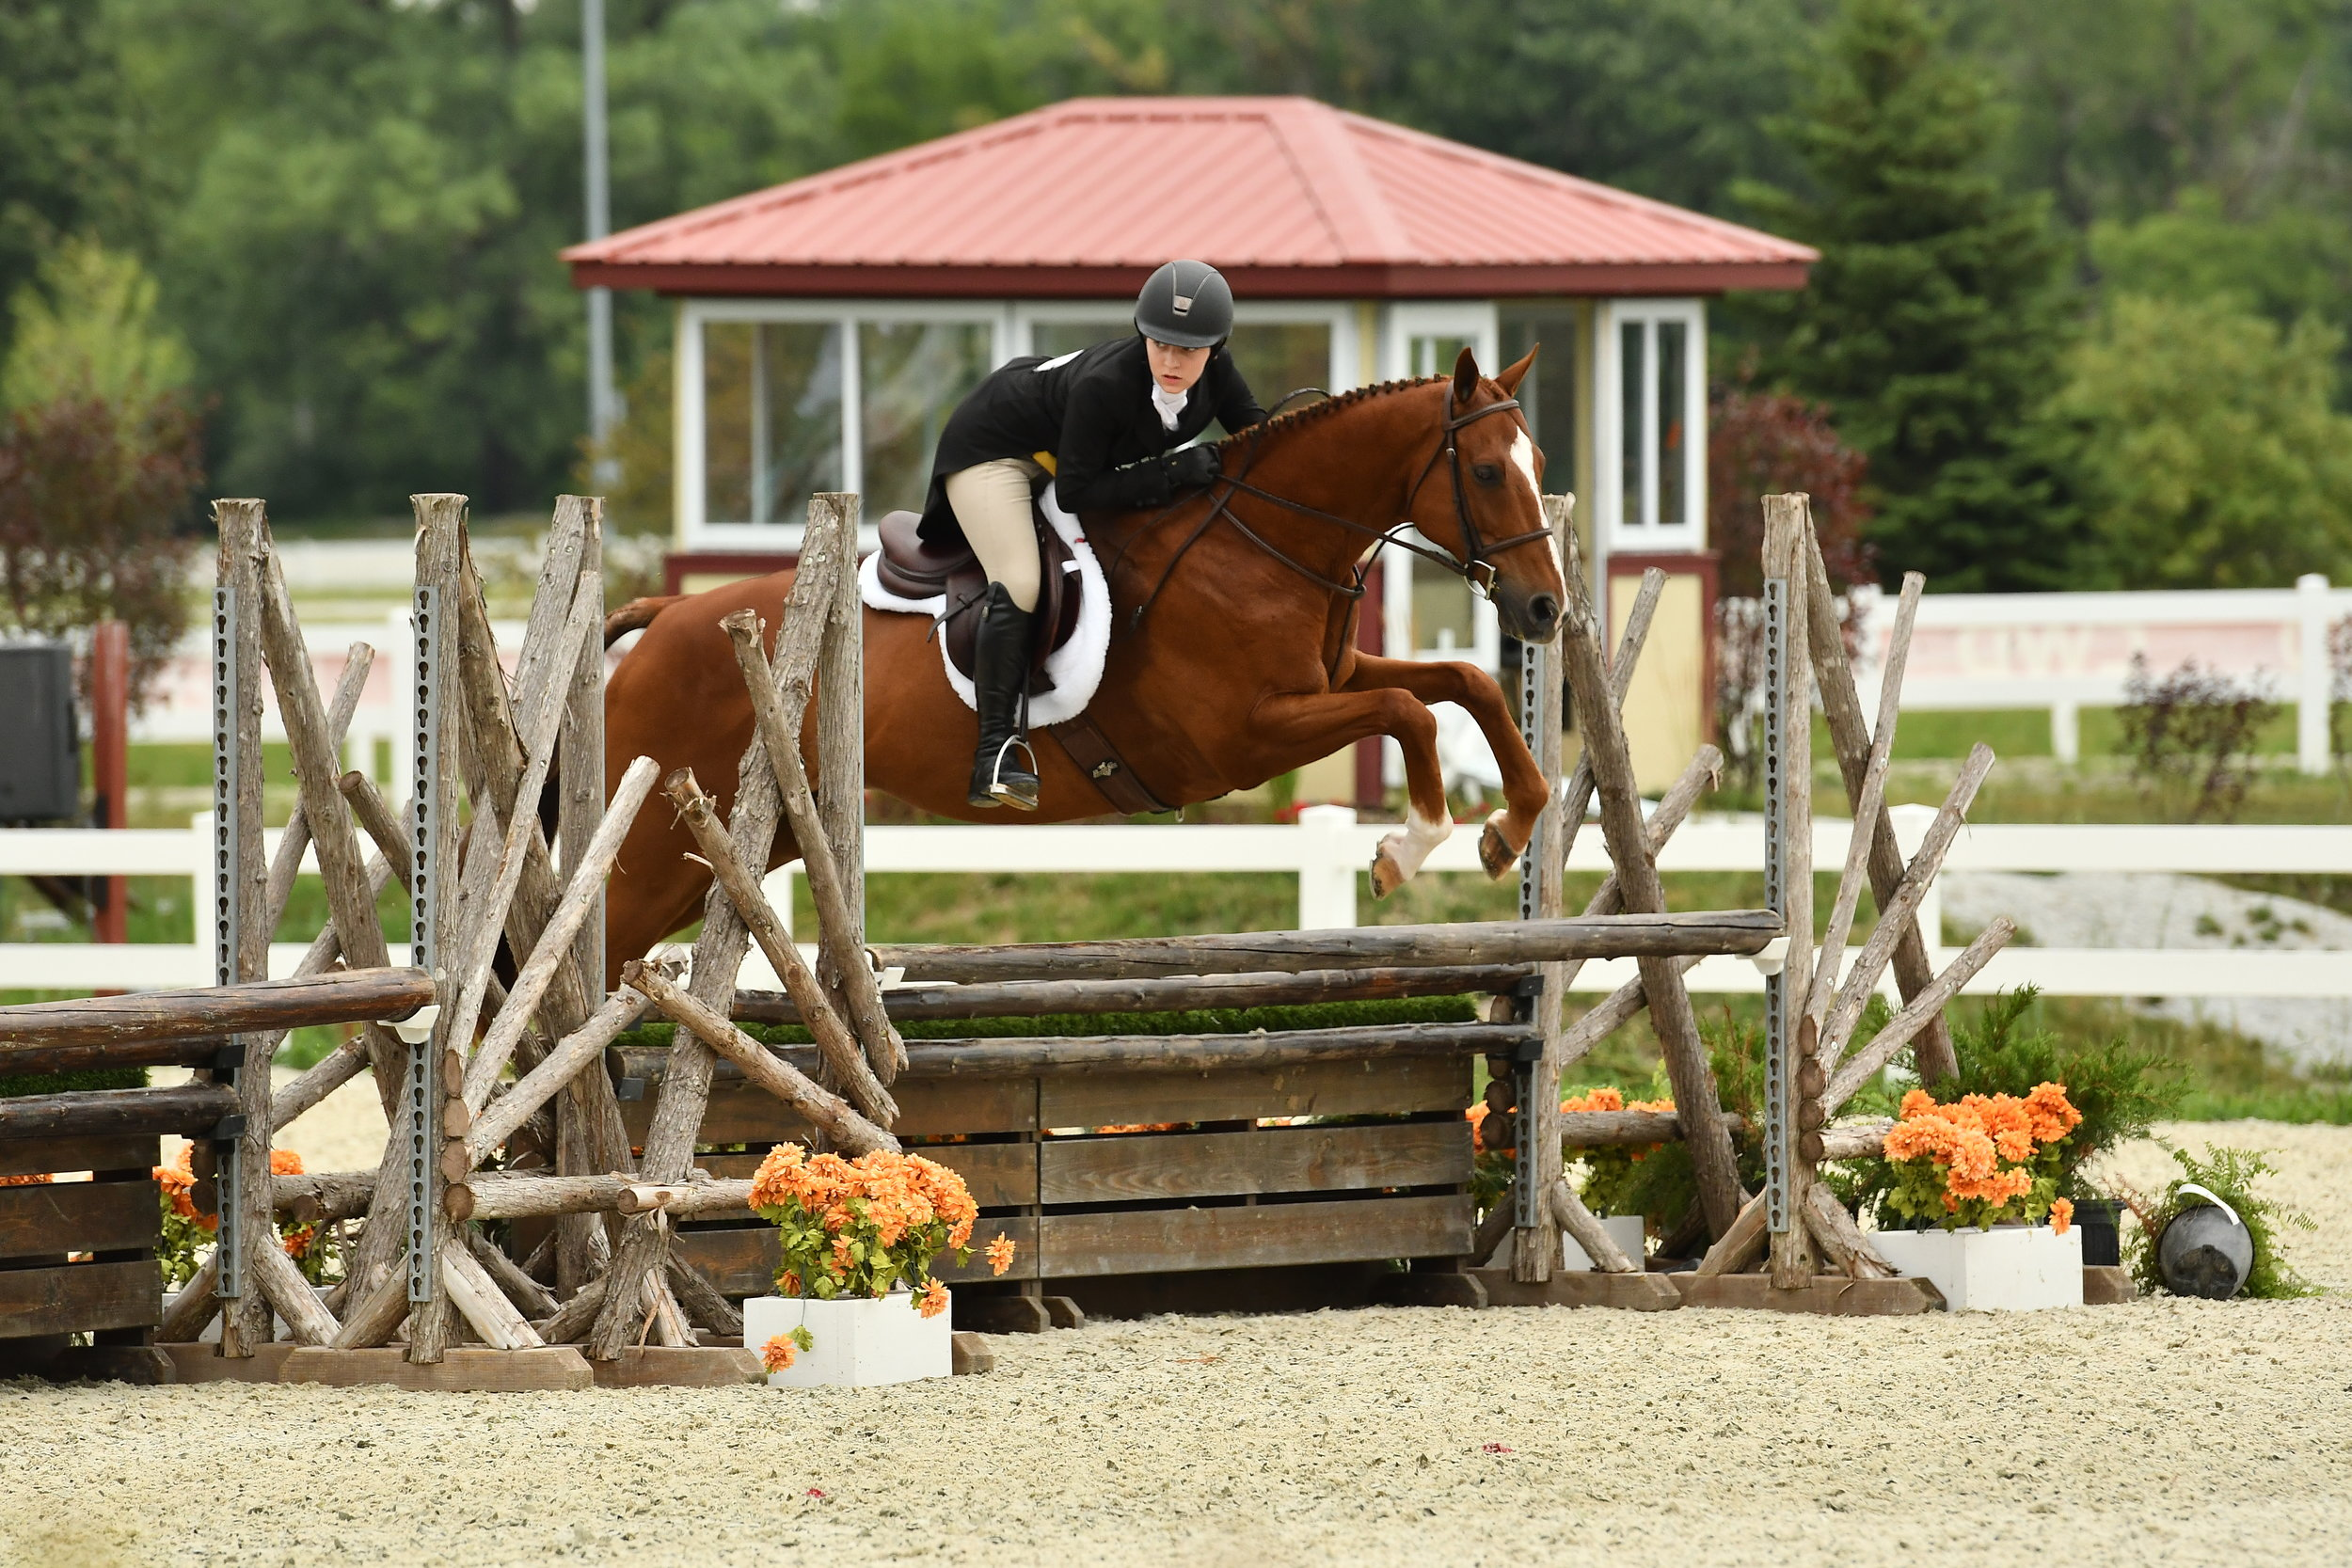 Dayna Pochron and O'Rion jumped to a victory in the Children's Hunter Individual Championship. Photo: Andrew Ryback Photography